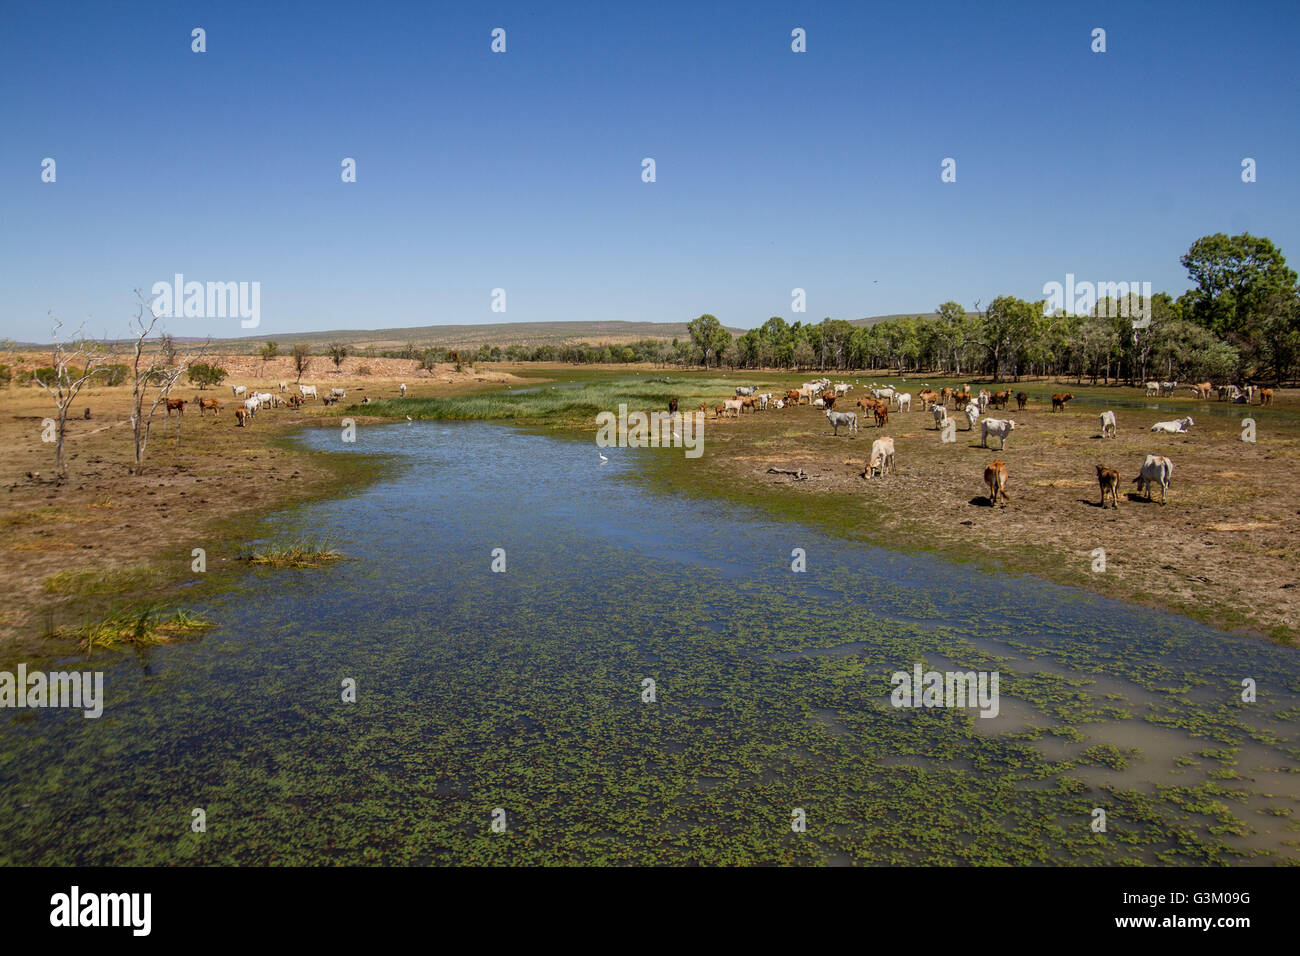 A billabong in the Australian outback - Stock Image